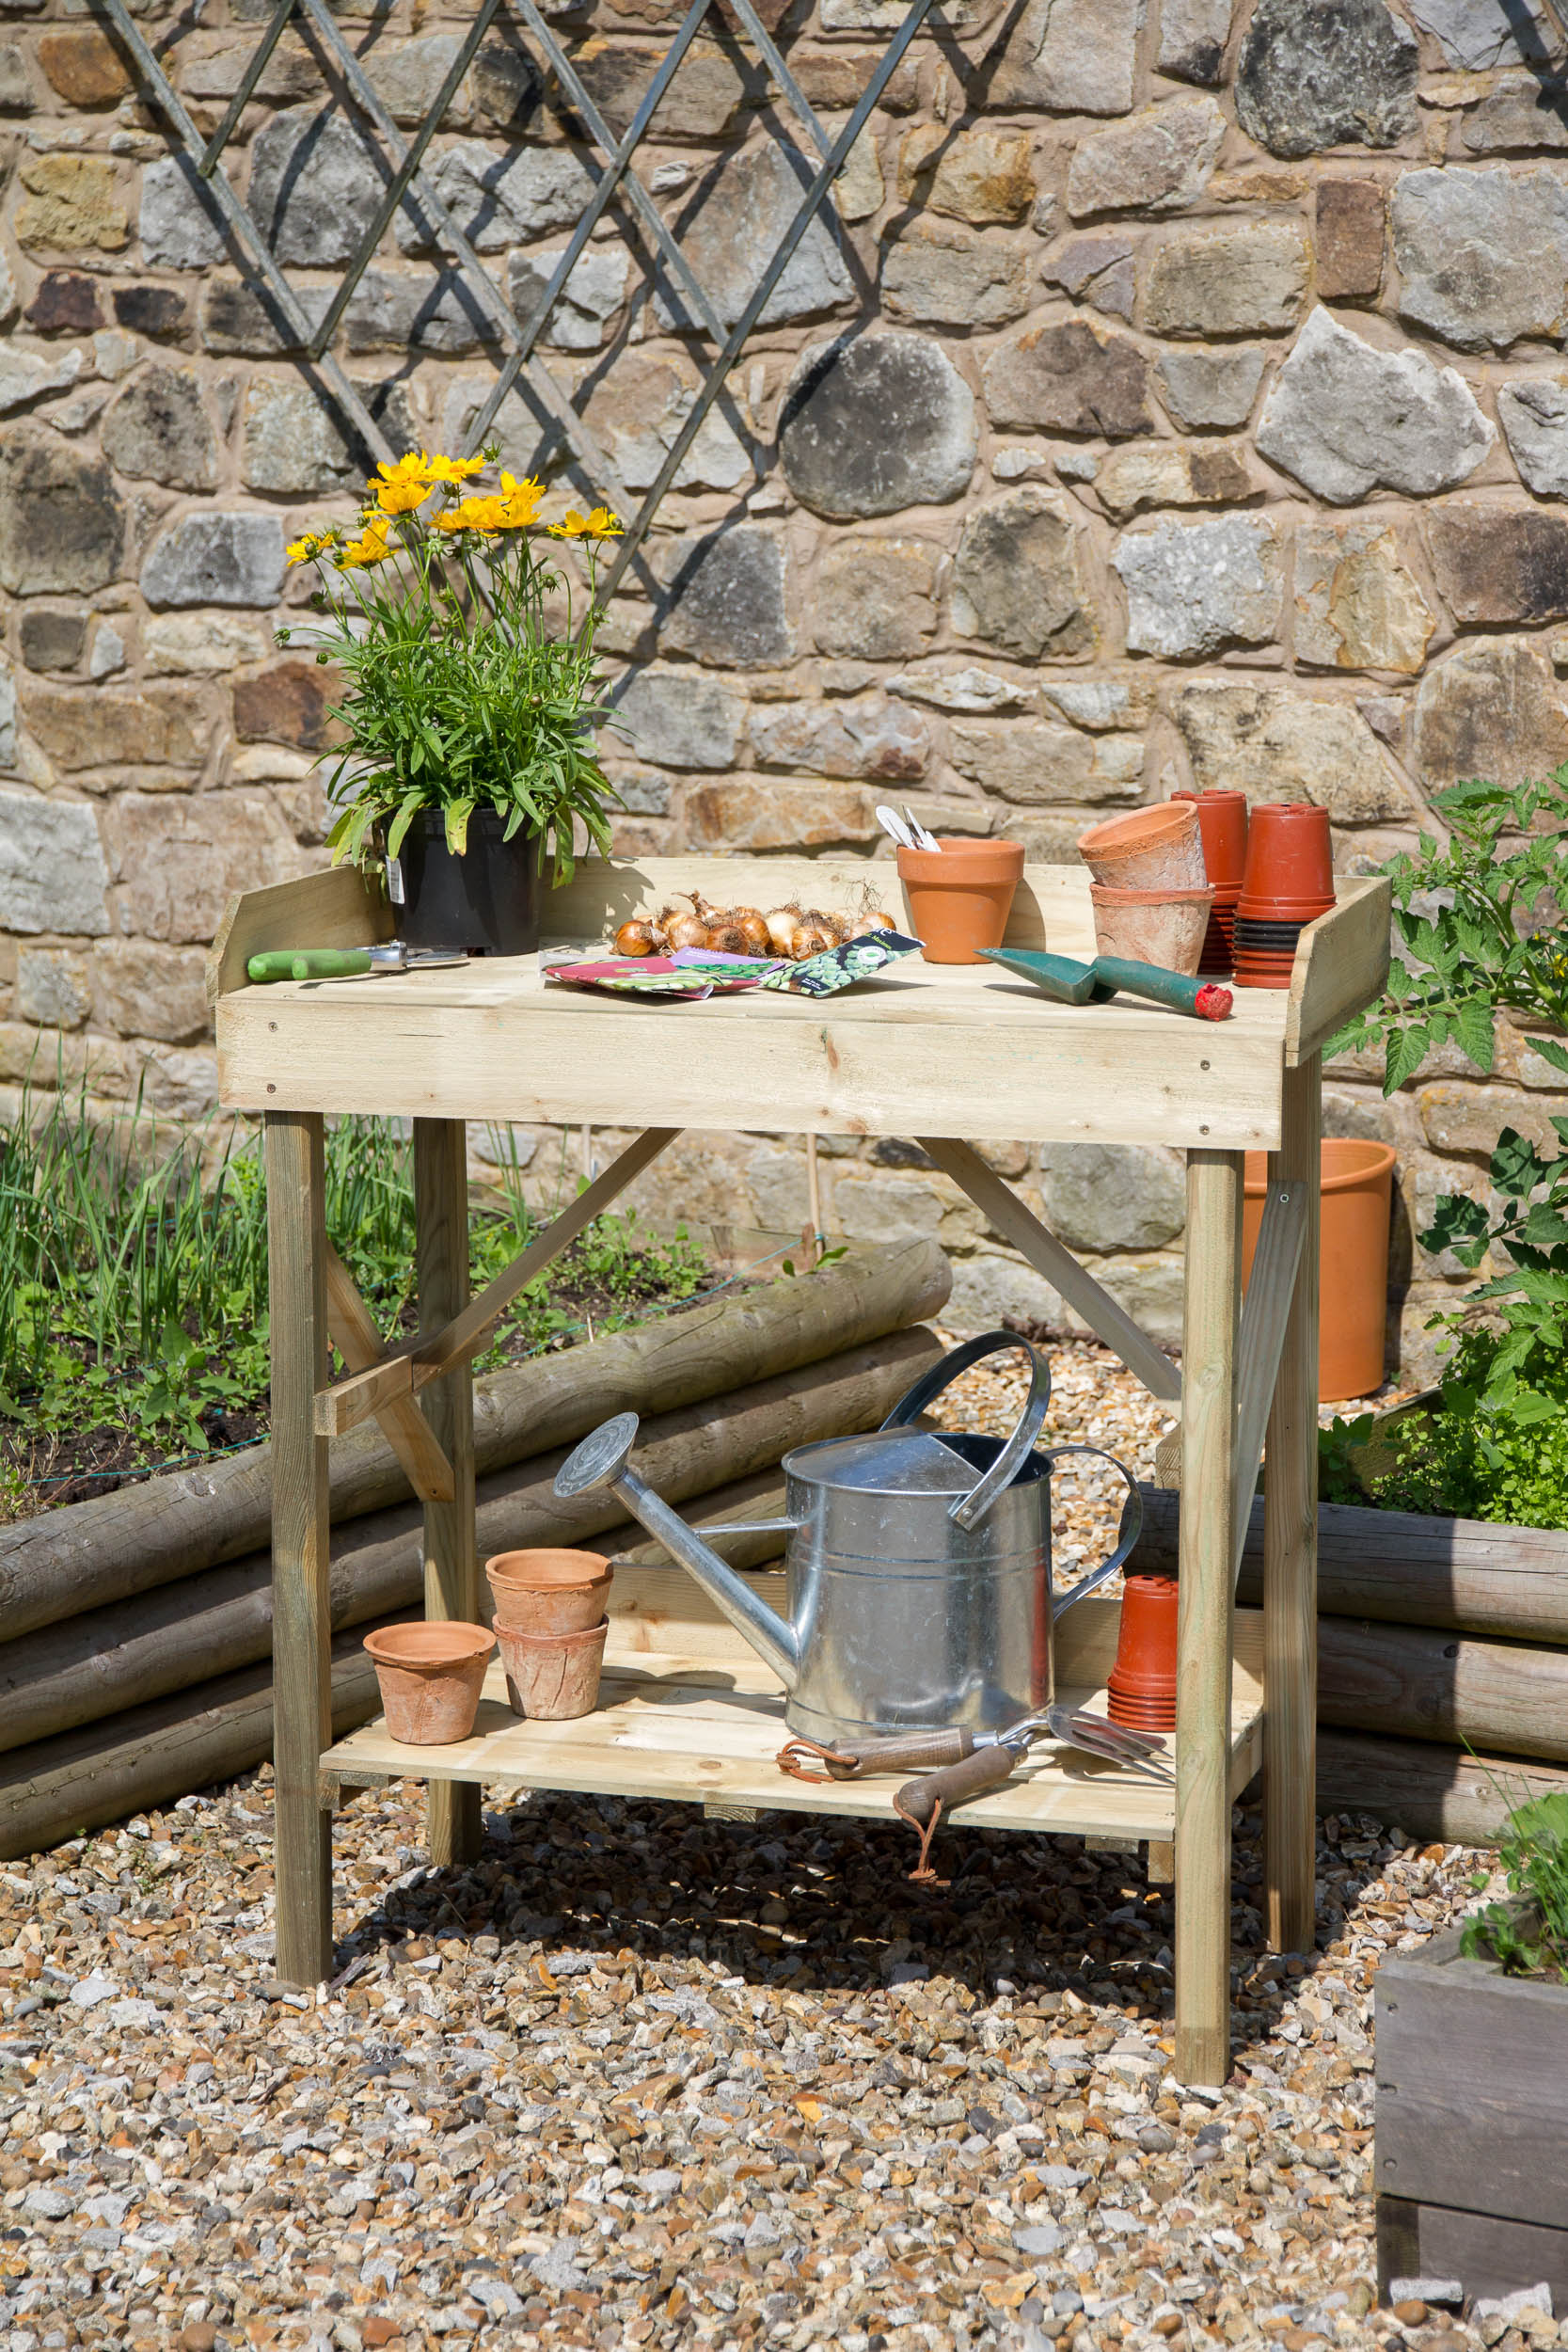 urbanamericana rustic table collections img outdoor potting products decor plant